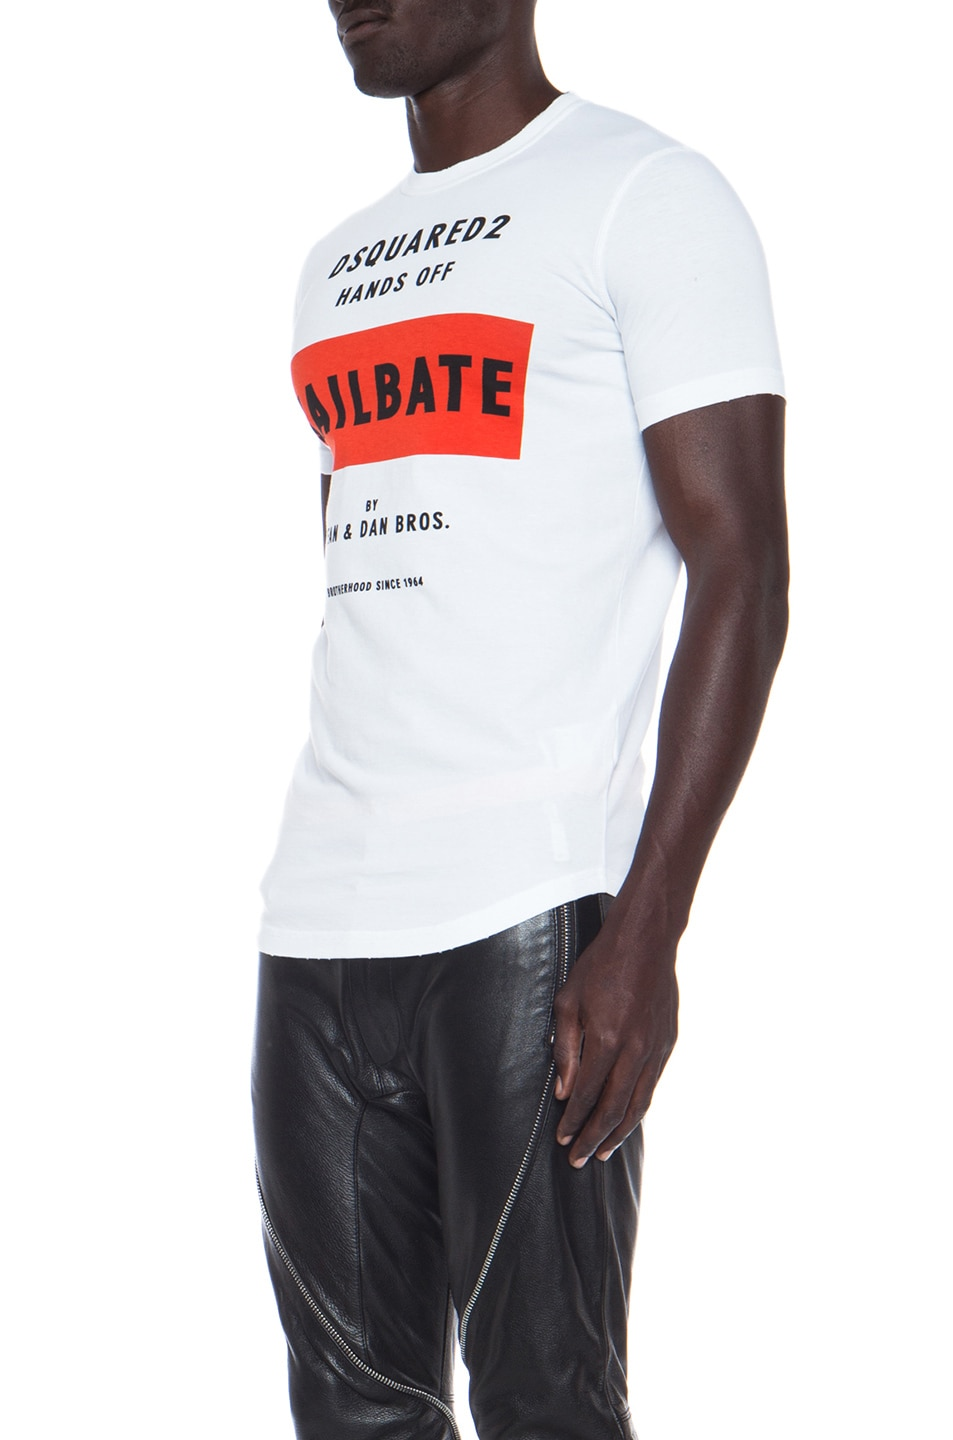 Image 2 of DSQUARED Jailbate Cotton Tee in White 7da4d2f3b